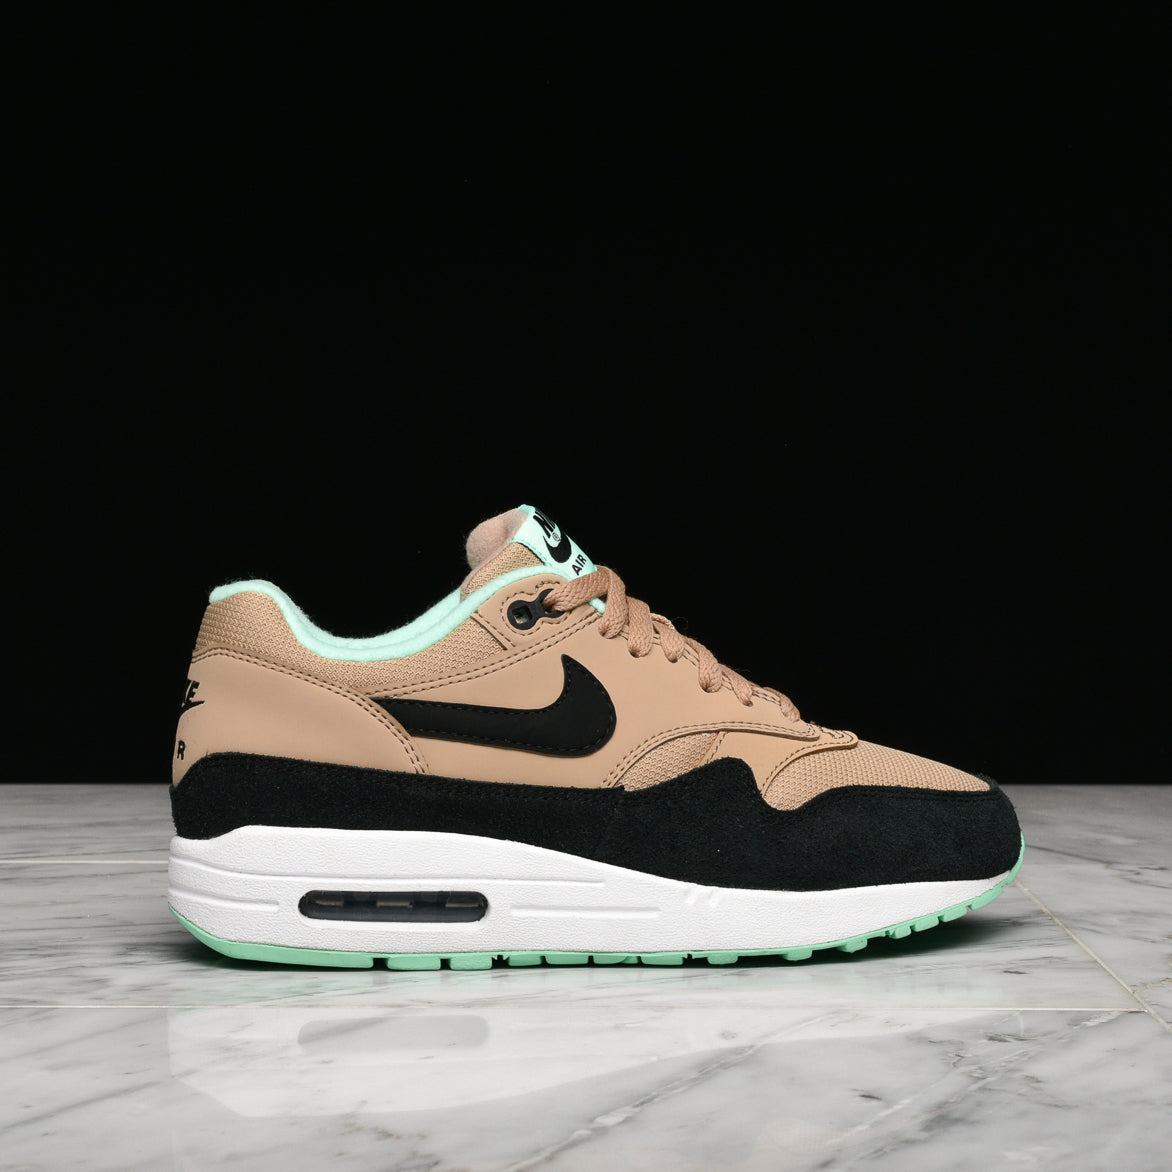 WMNS AIR MAX 1 DESERT BLACK GREEN GLOW